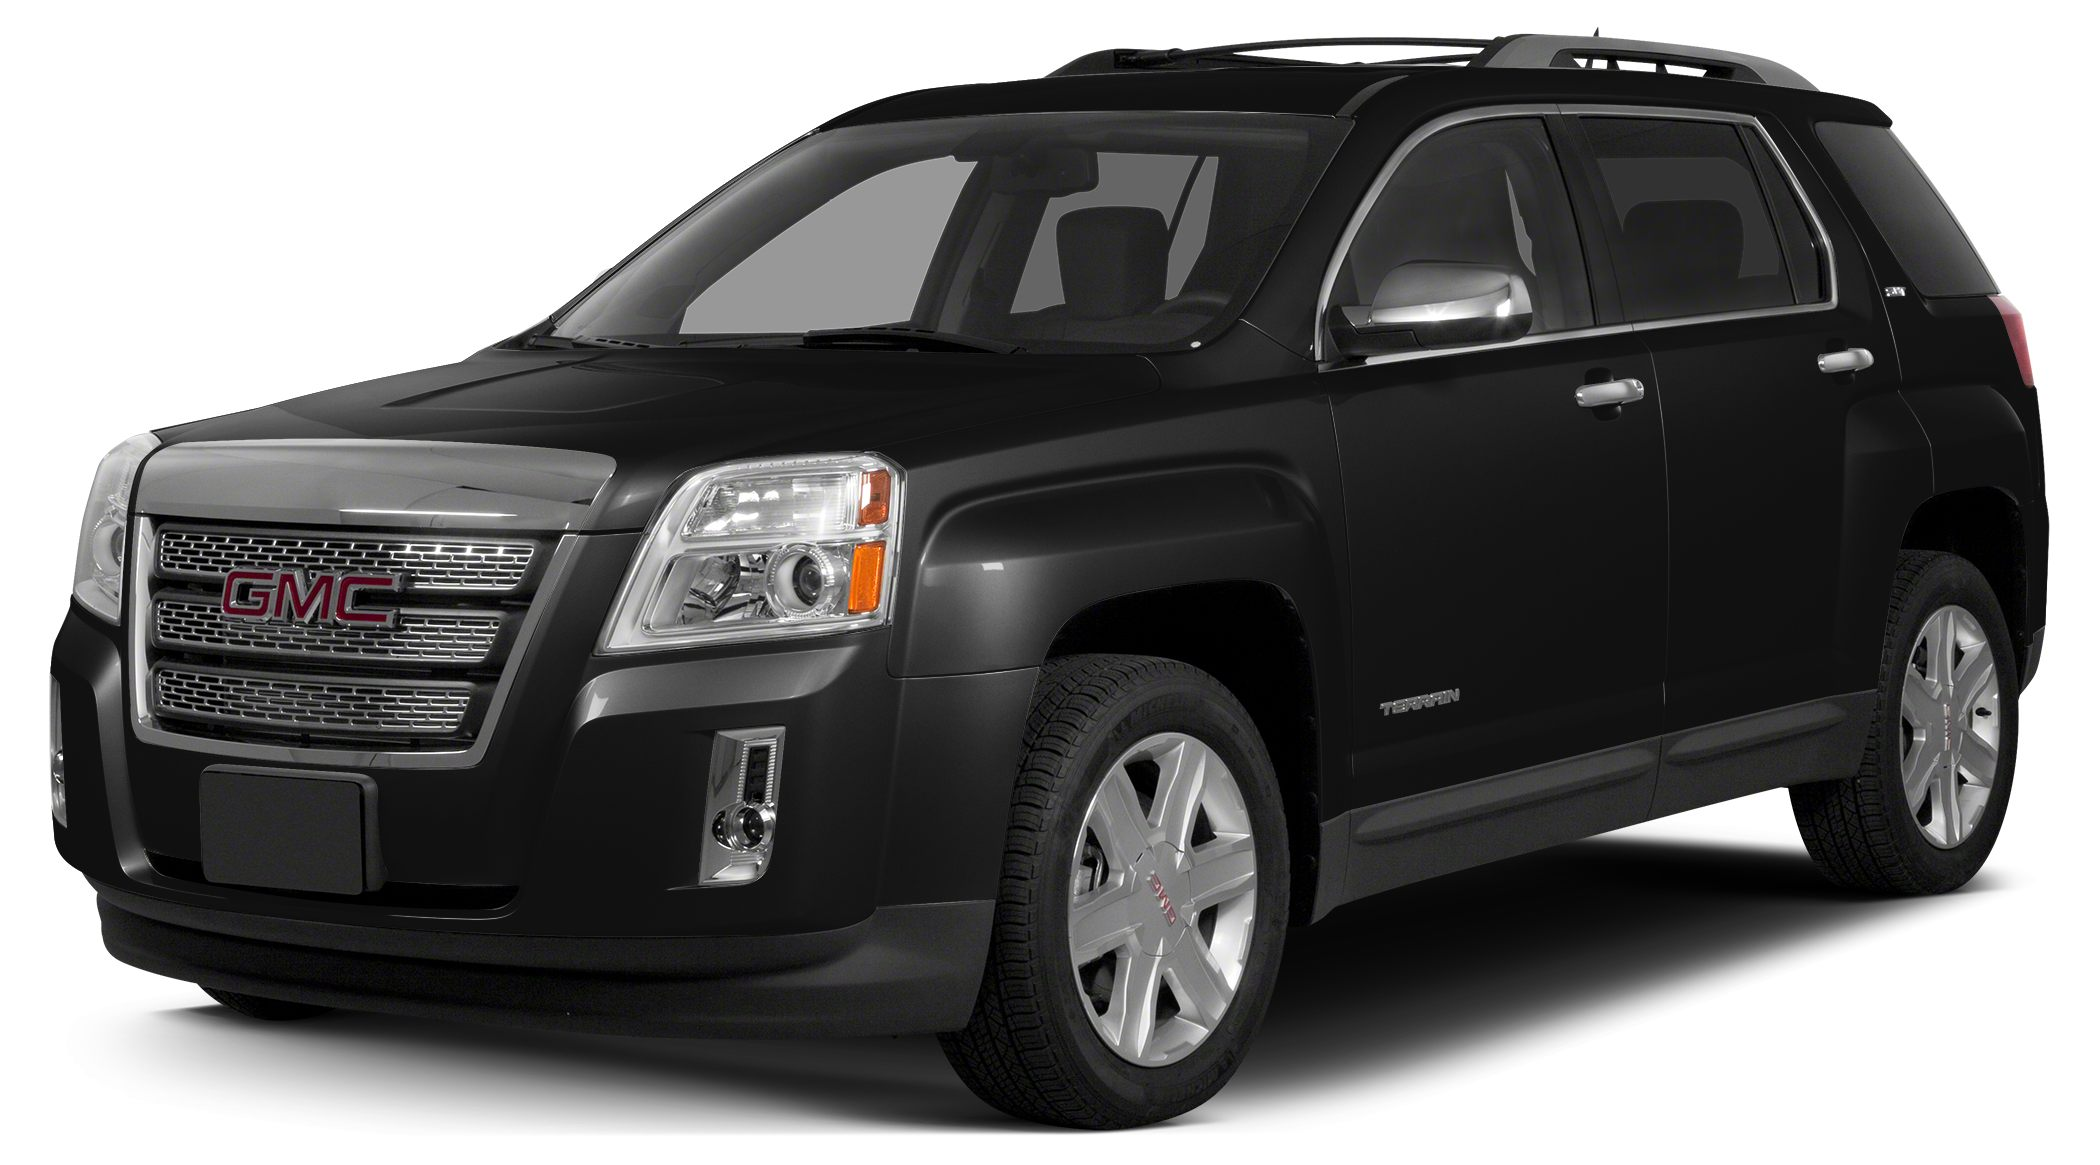 2015 GMC Terrain SLT-2 CARFAX 1-Owner FUEL EFFICIENT 32 MPG Hwy22 MPG City Moonroof Heated Lea